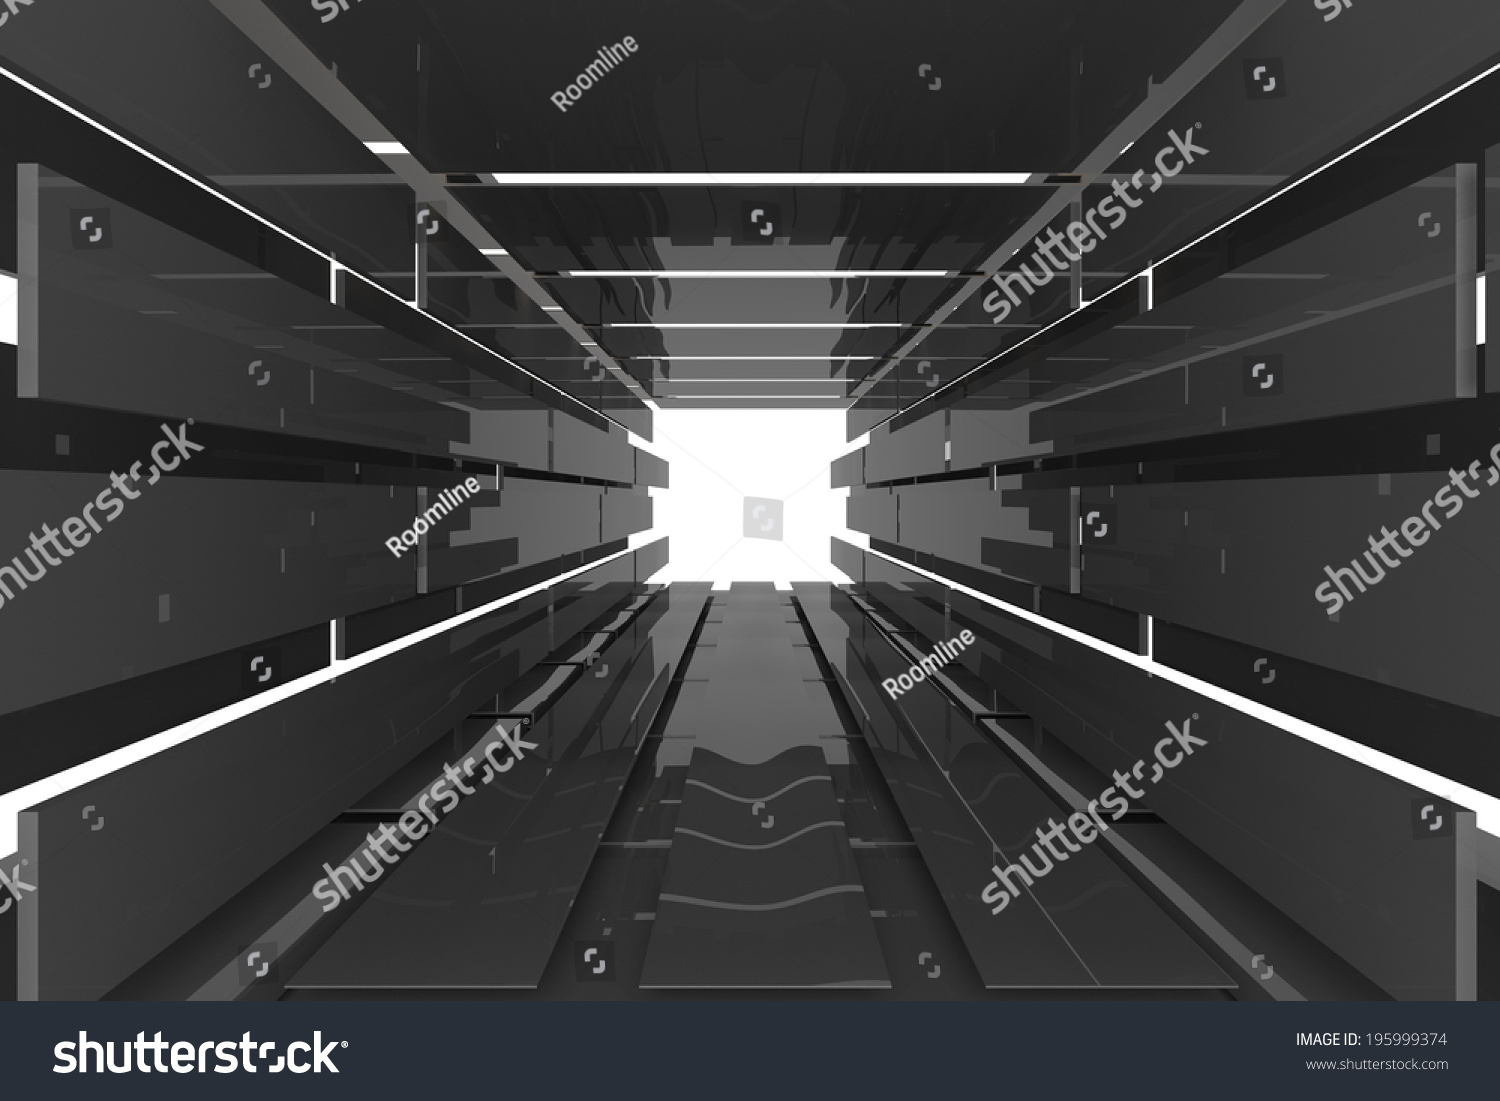 Futuristic Interior Empty Room With Black Reflective Materials Imagen